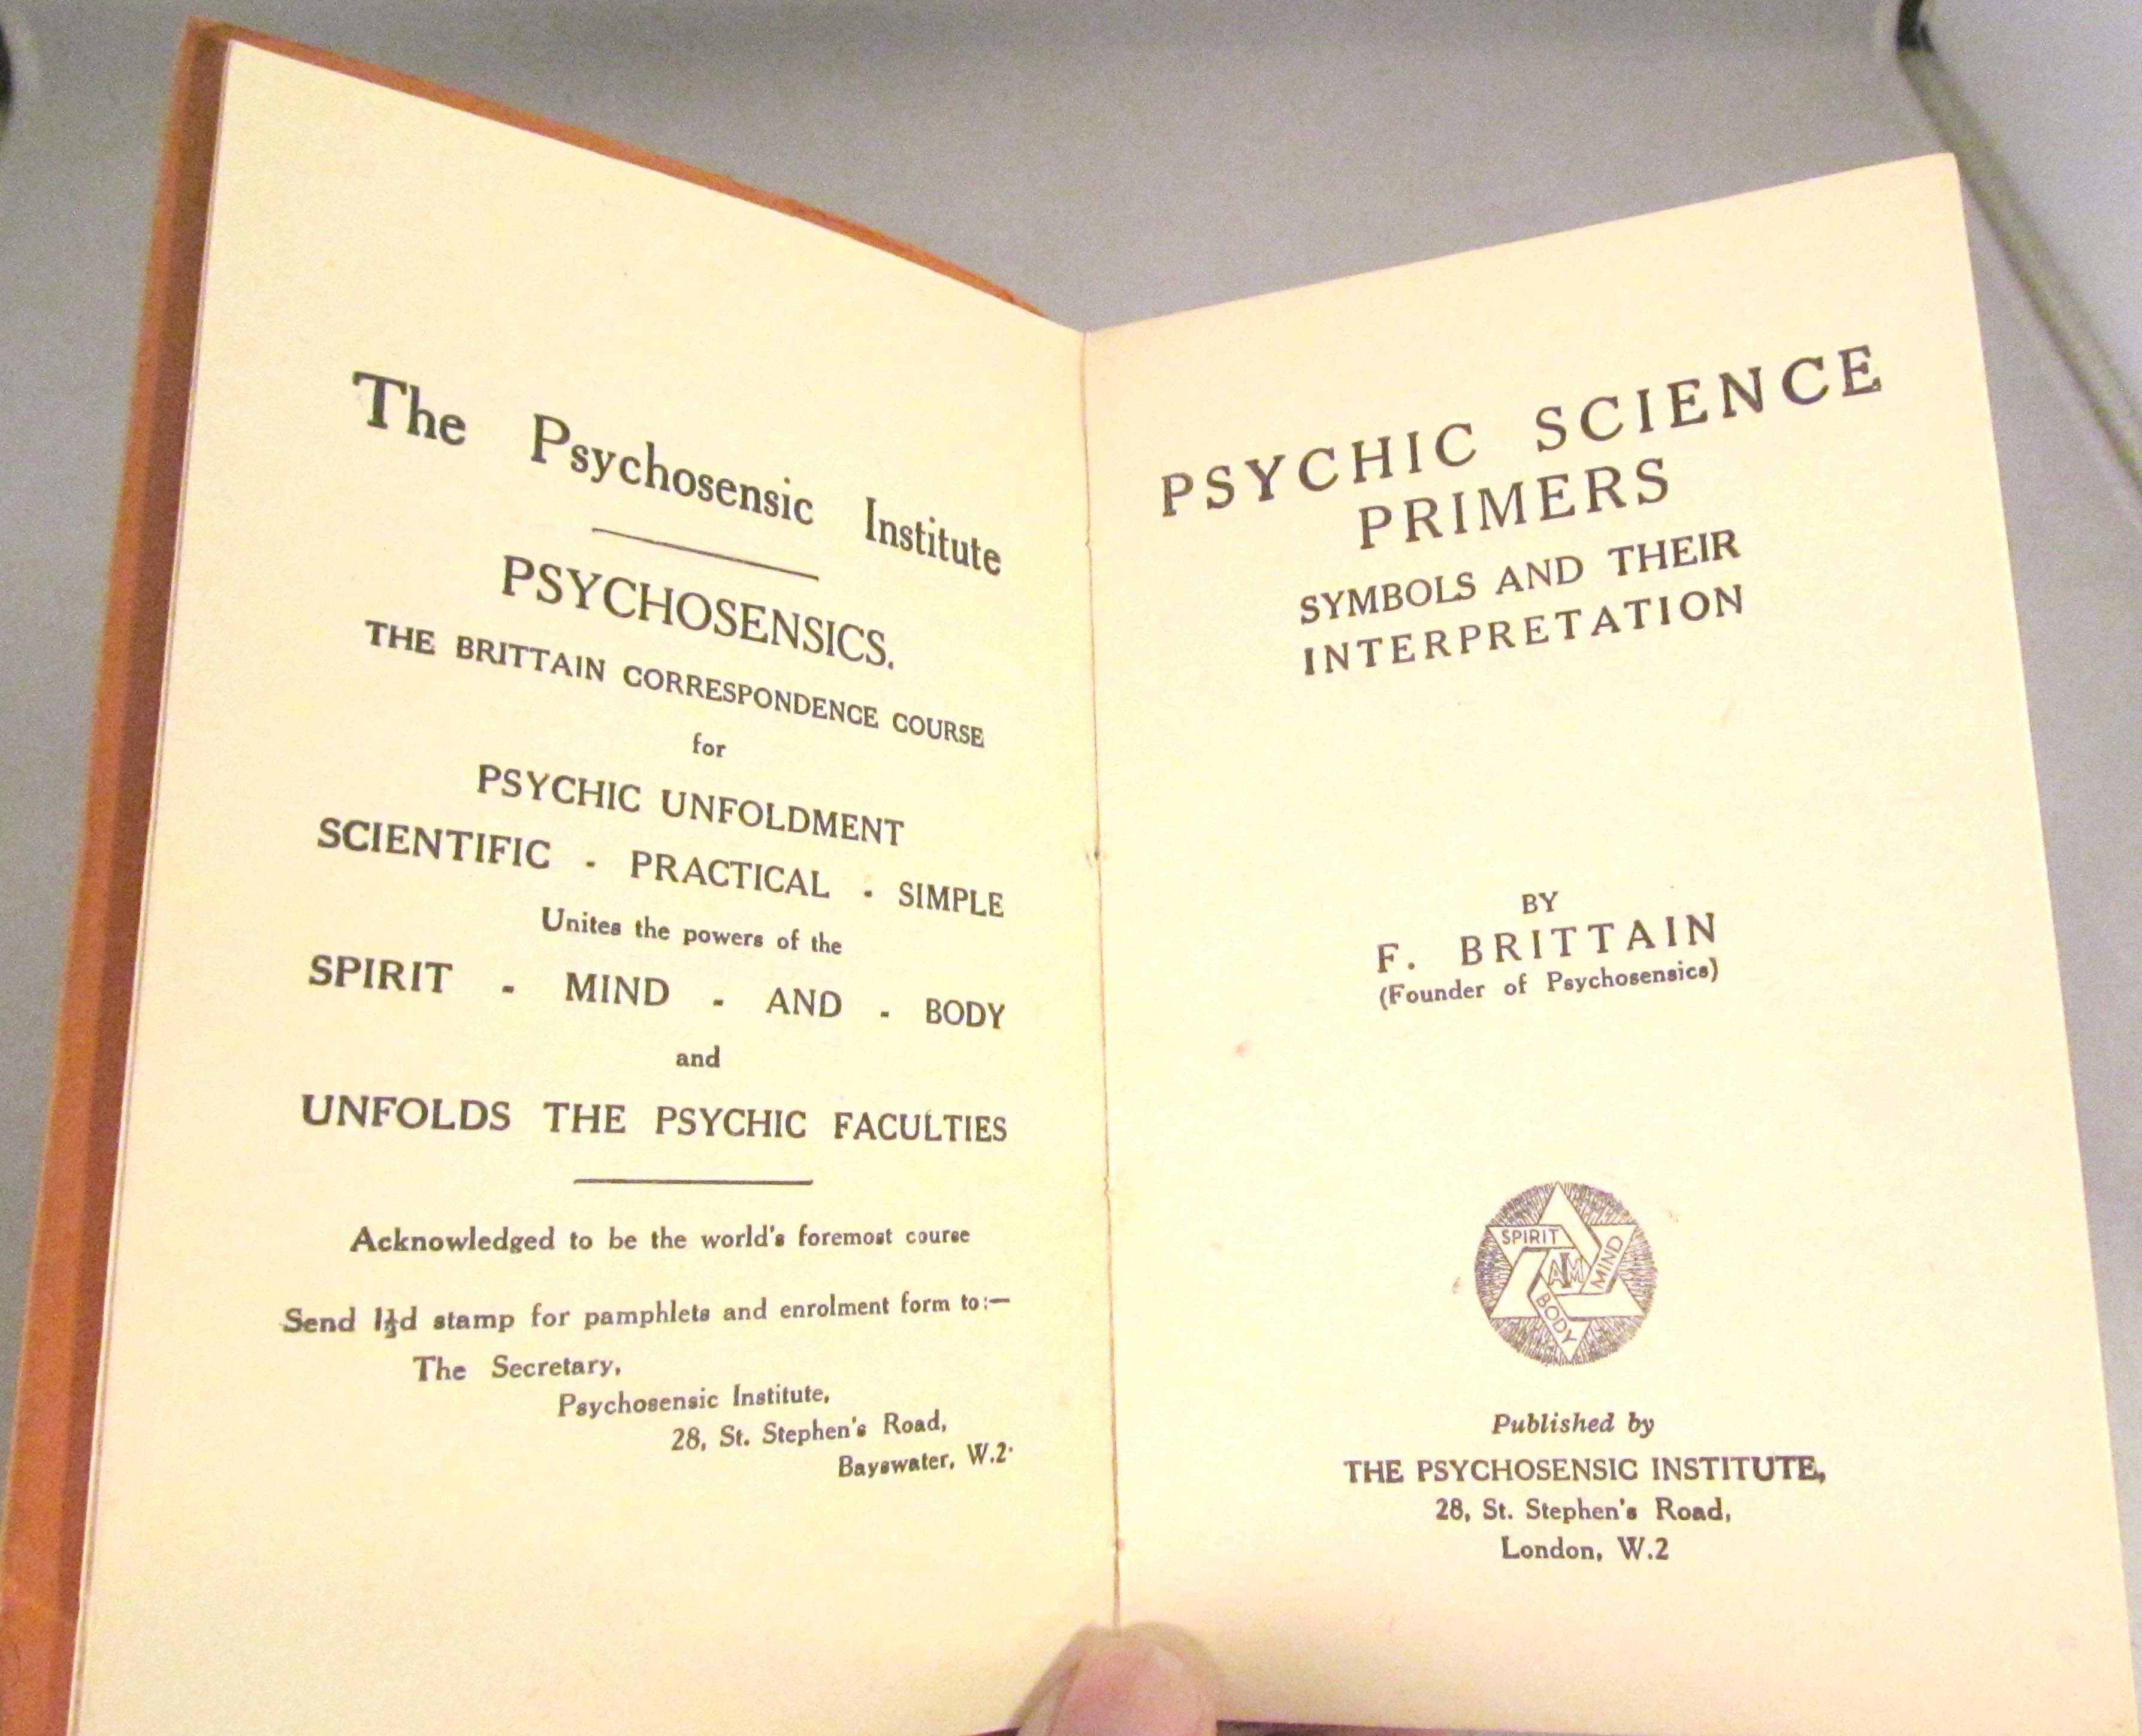 Psychic Science Primers No. 1 Symbols and Their Interpretation by F  Brittain - Paperback - Presumed First Edition - from Renaissance Books  (SKU: 14724)